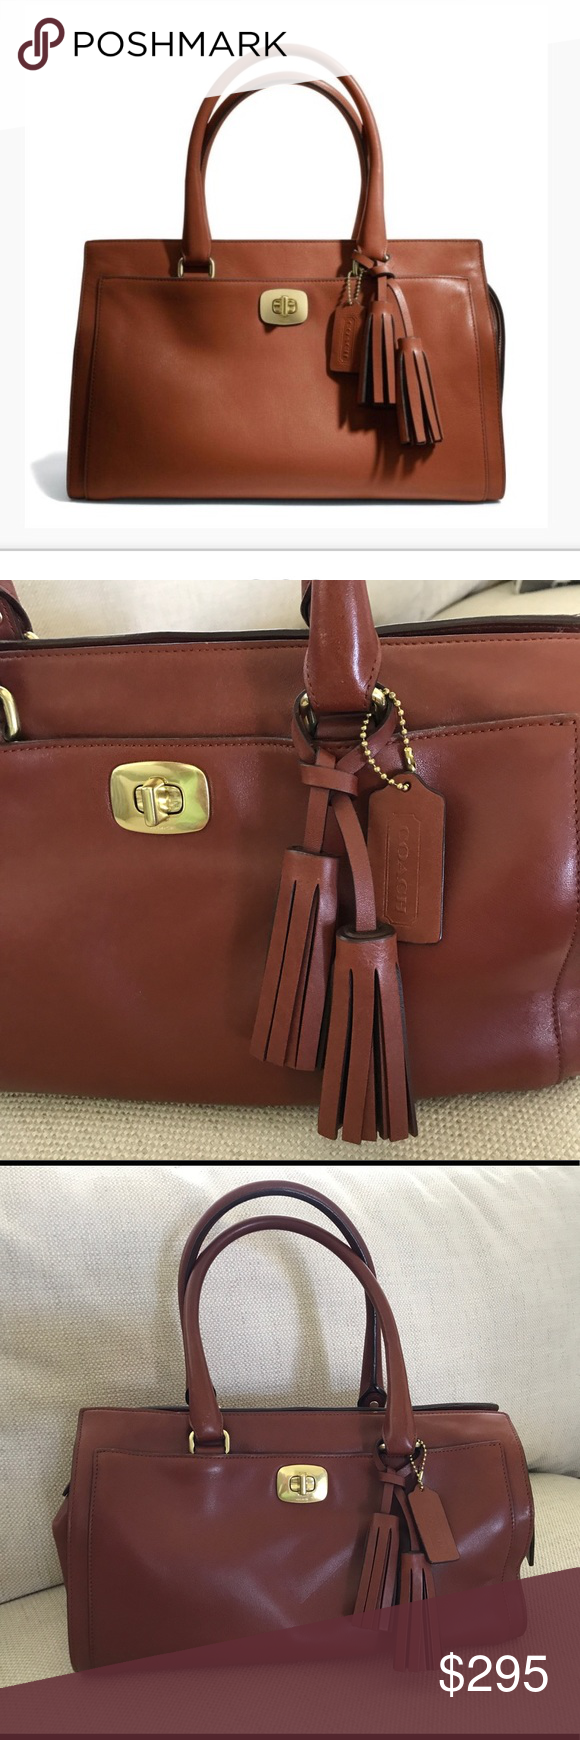 Coach Leather Handbag Authentic Coach Legacy satchel in cognac brown. Gold  tone hardware. Beautiful soft genuine leather. Bag is in excellent  condition. cf22fe93d6